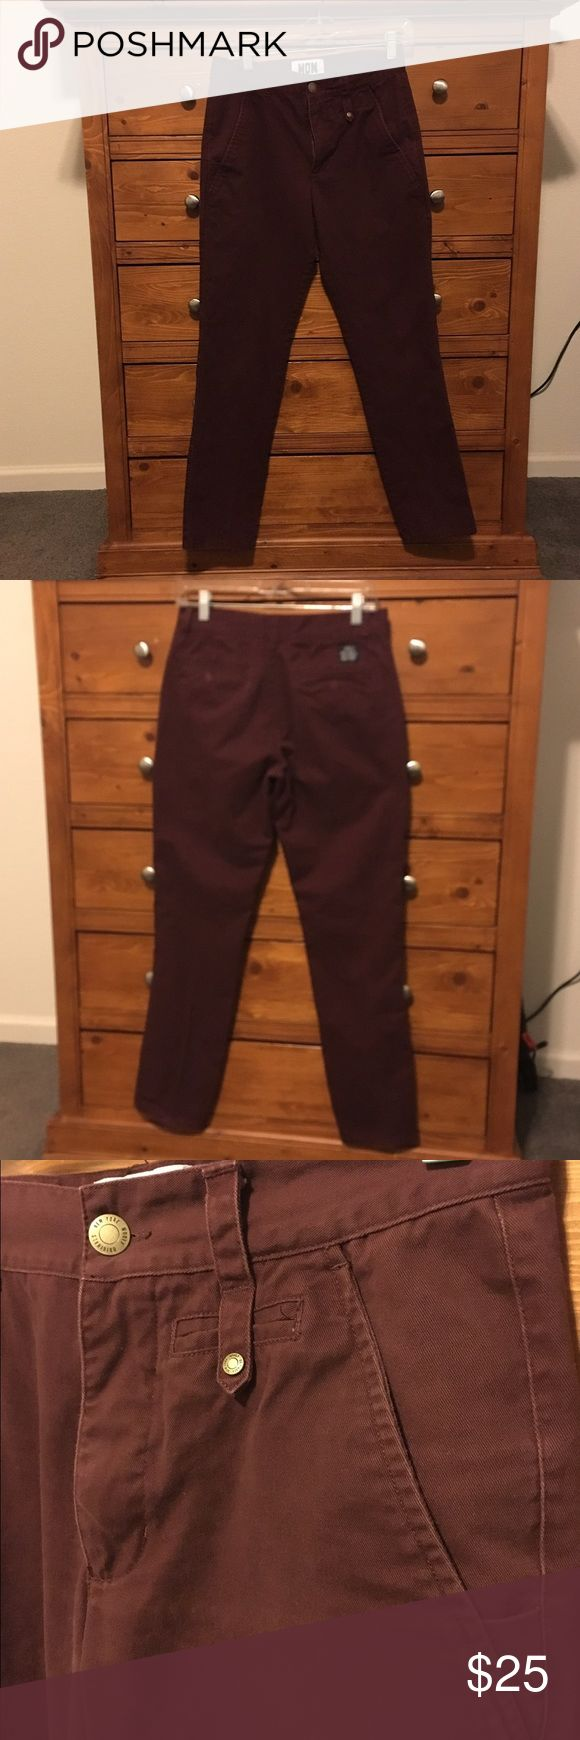 Woolf Men's Chino Maroon Chino Pants sz 29 Woolf Men's Chino Maroon Chino Pants sz 29 Excellent condition. Deep rich color. No issues with these pants. Wine color suede like feel to fabric. WOOLF Pants Chinos & Khakis